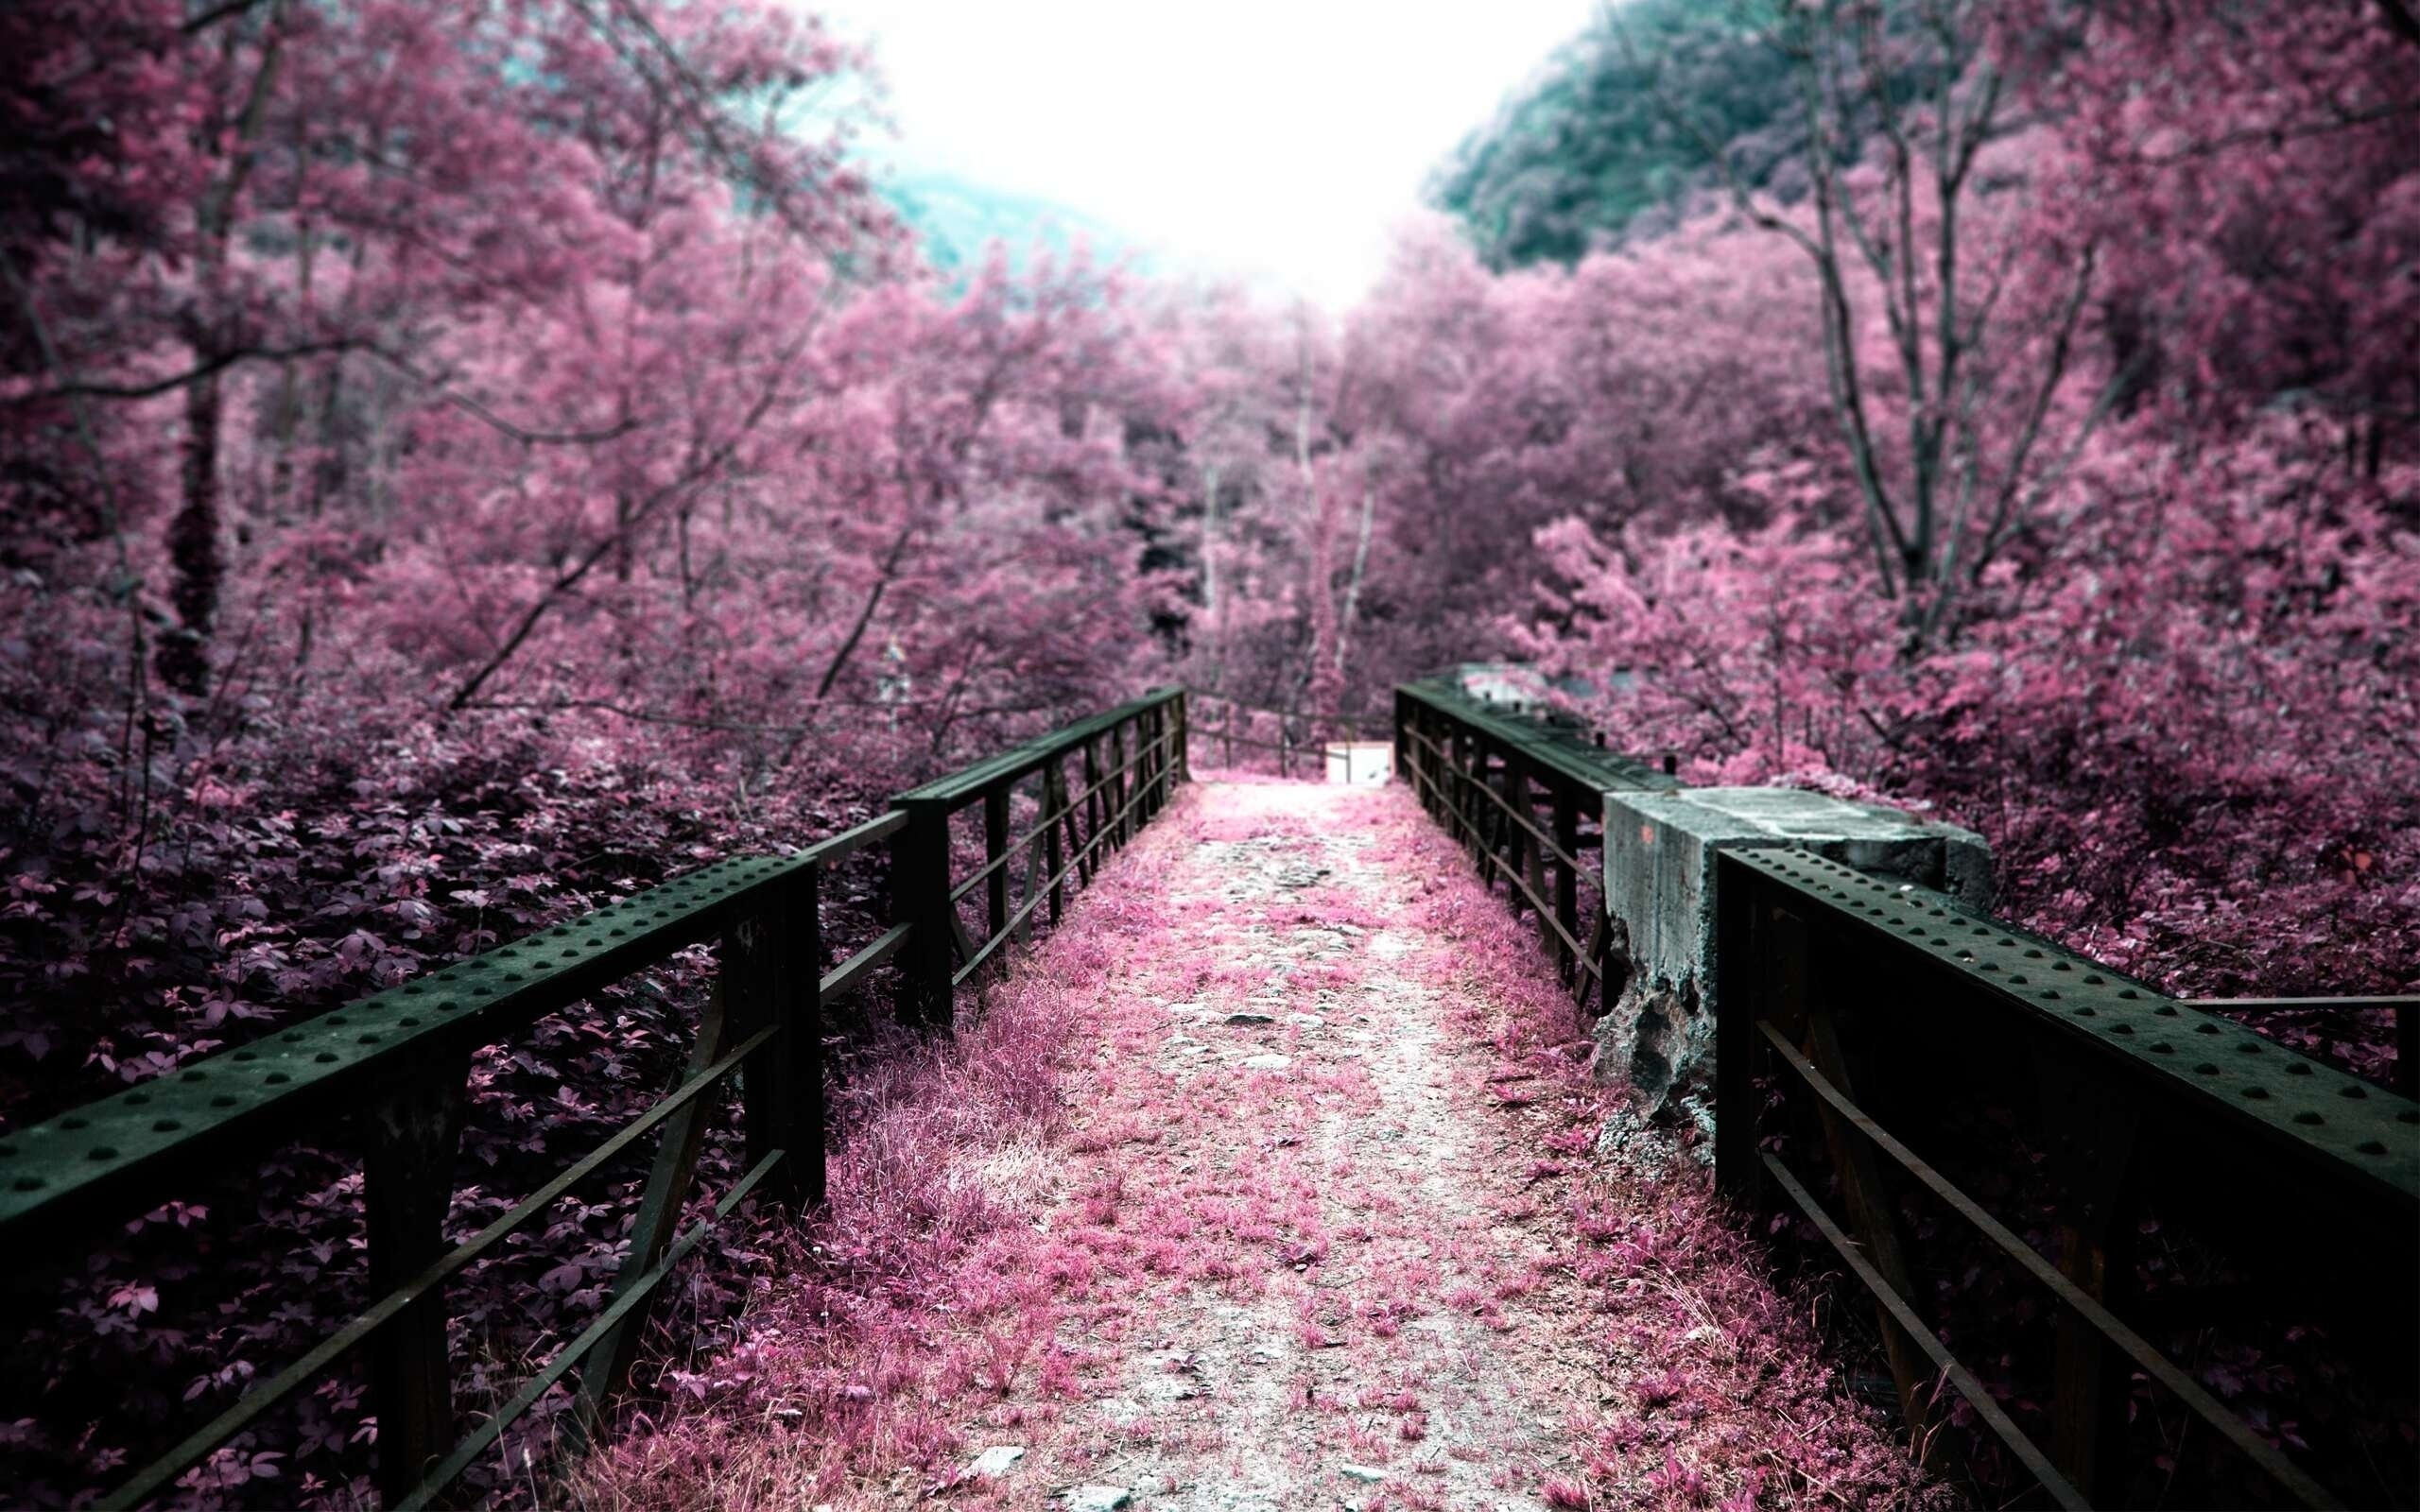 Cherry blossoms on a bridge hd wallpaper background Â« HD Wallpapers